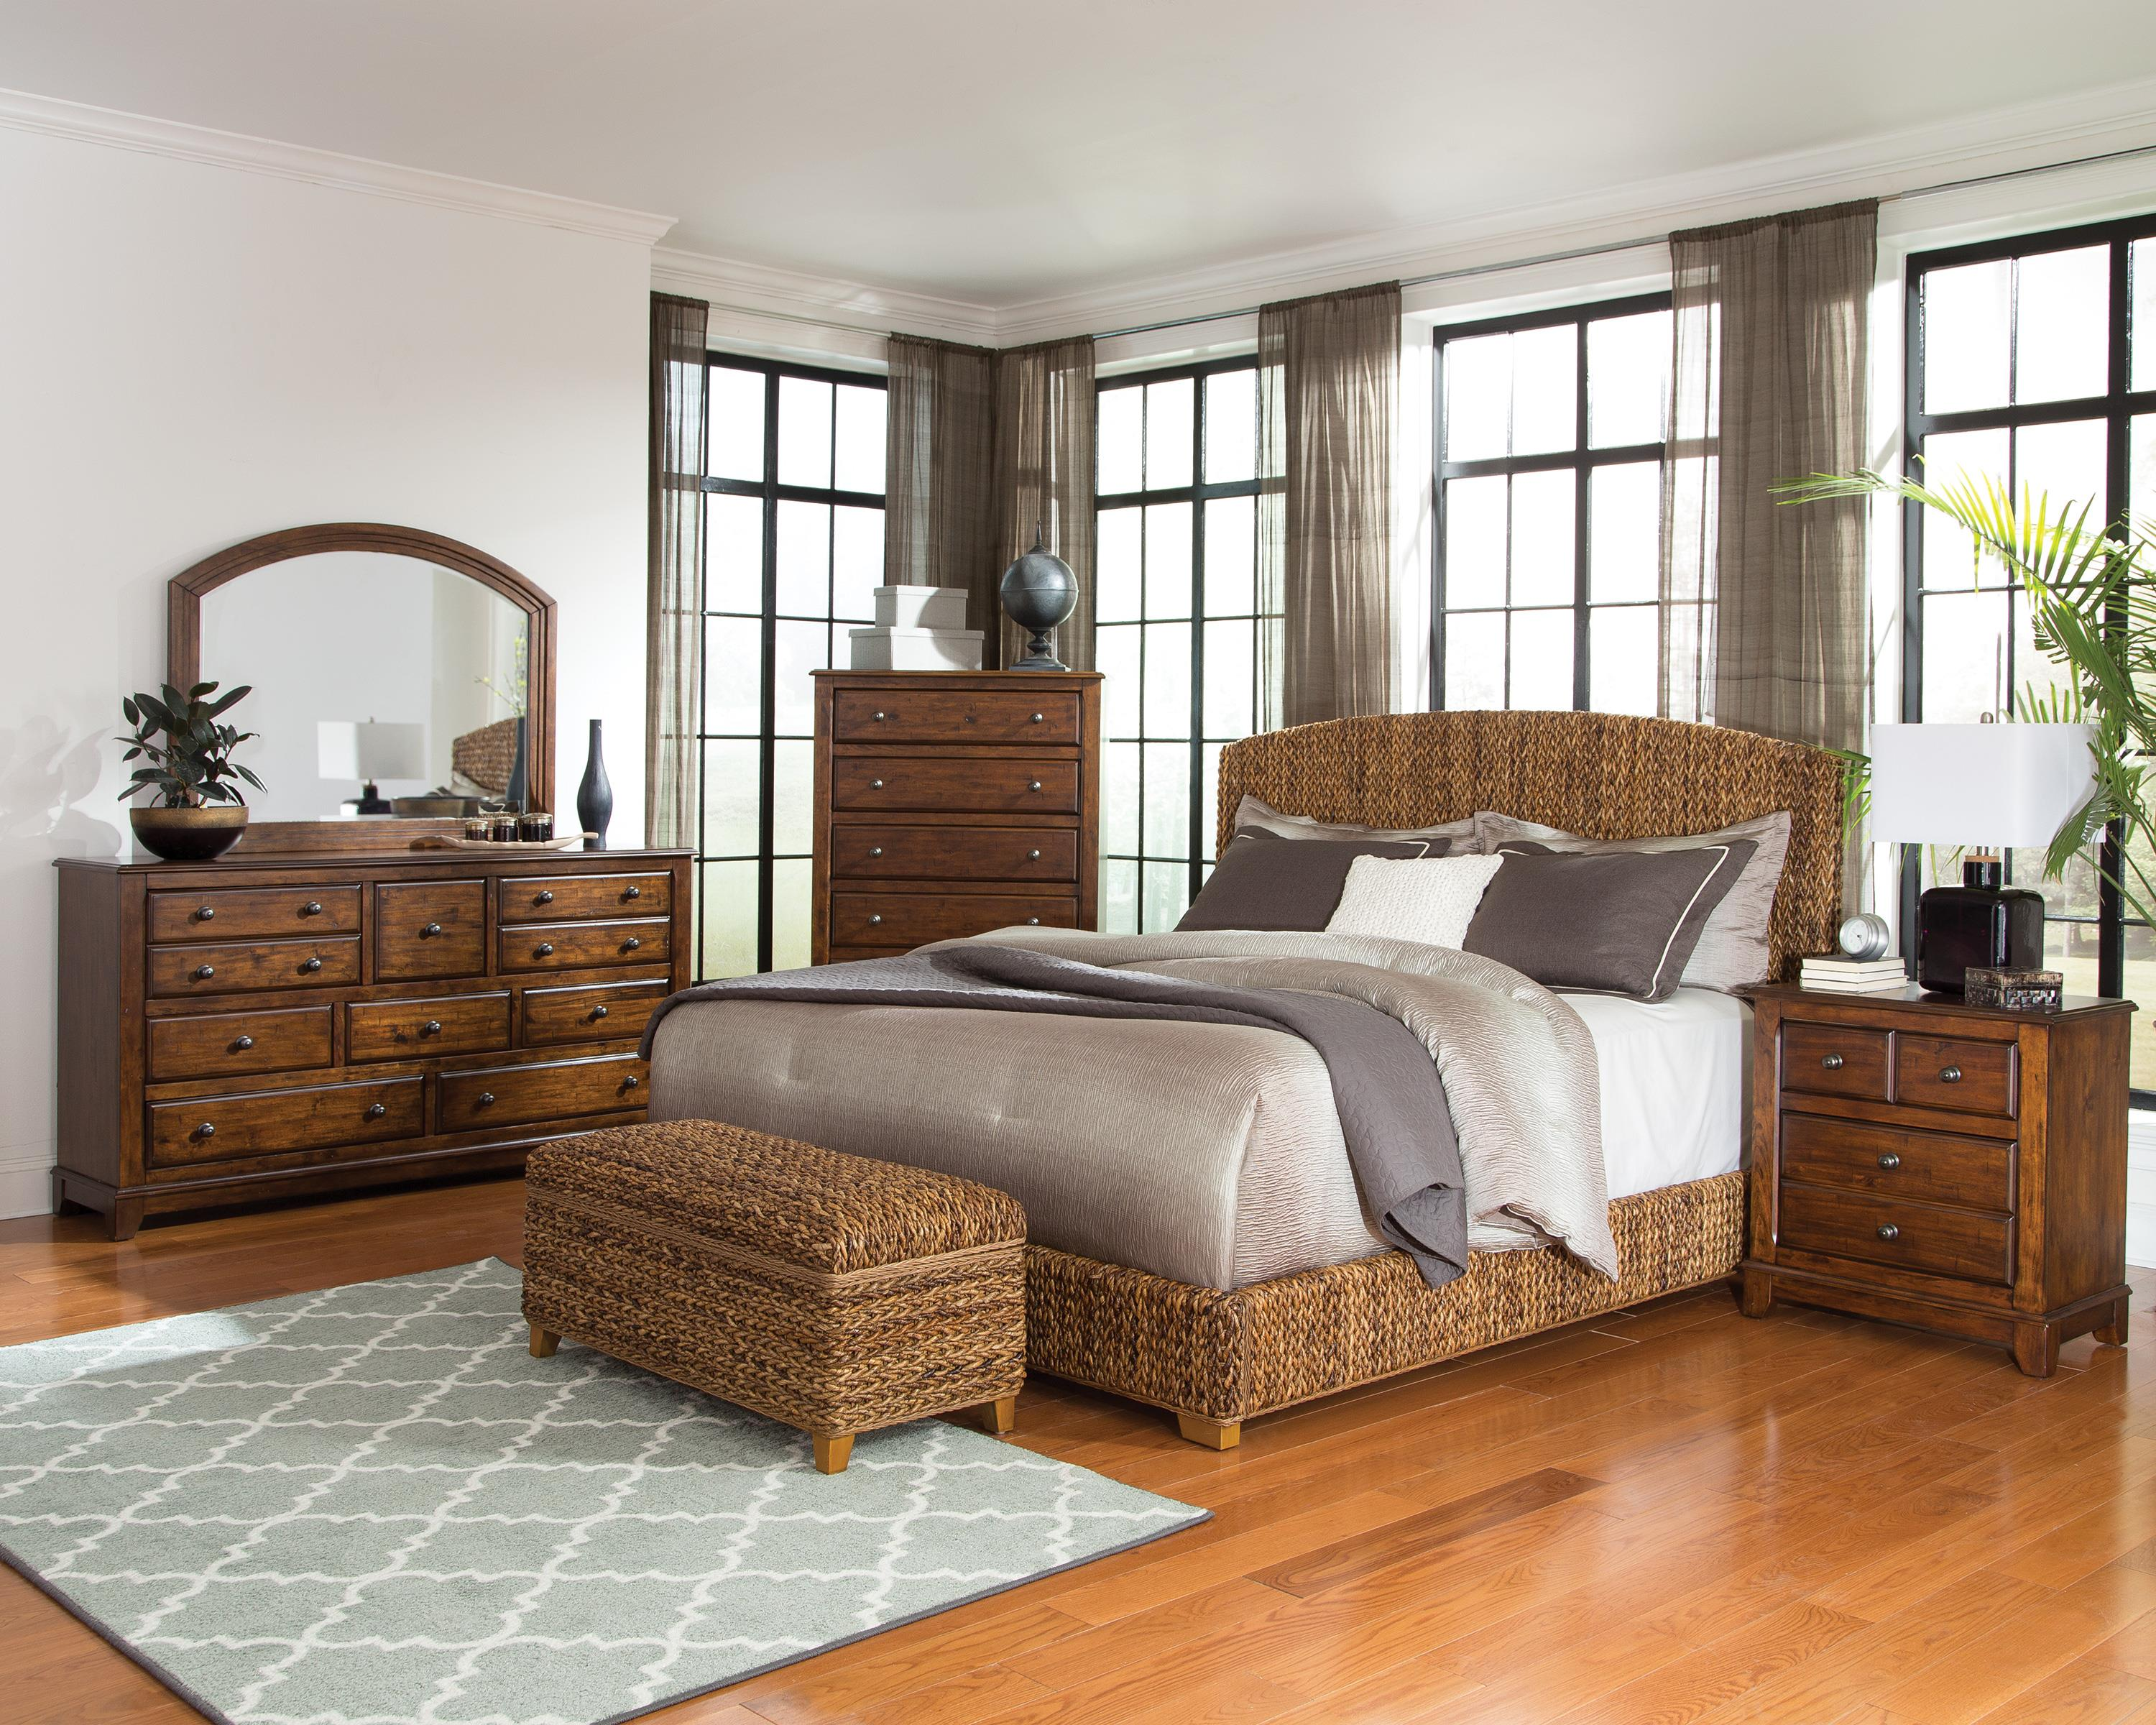 Laughton Woven Banana Leaf California King Bed Quality Furniture At Affordable Prices In Philadelphia Main Line Pa